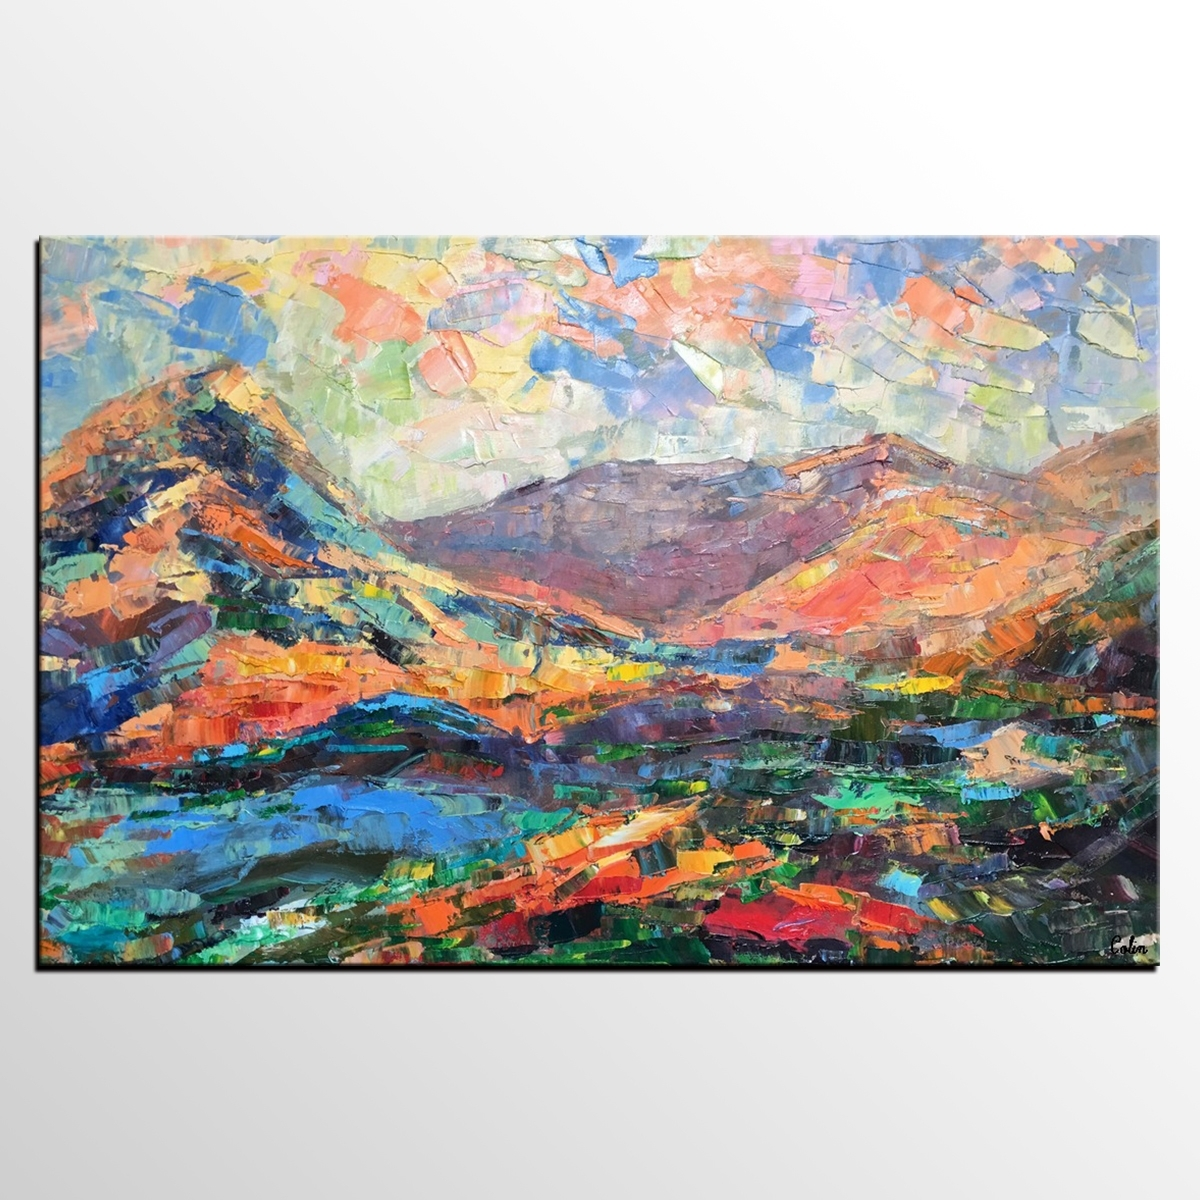 Abstract Mountain Landscape Painting, Large Wall Art, Large Art With Most Recent Abstract Landscape Wall Art (View 6 of 20)